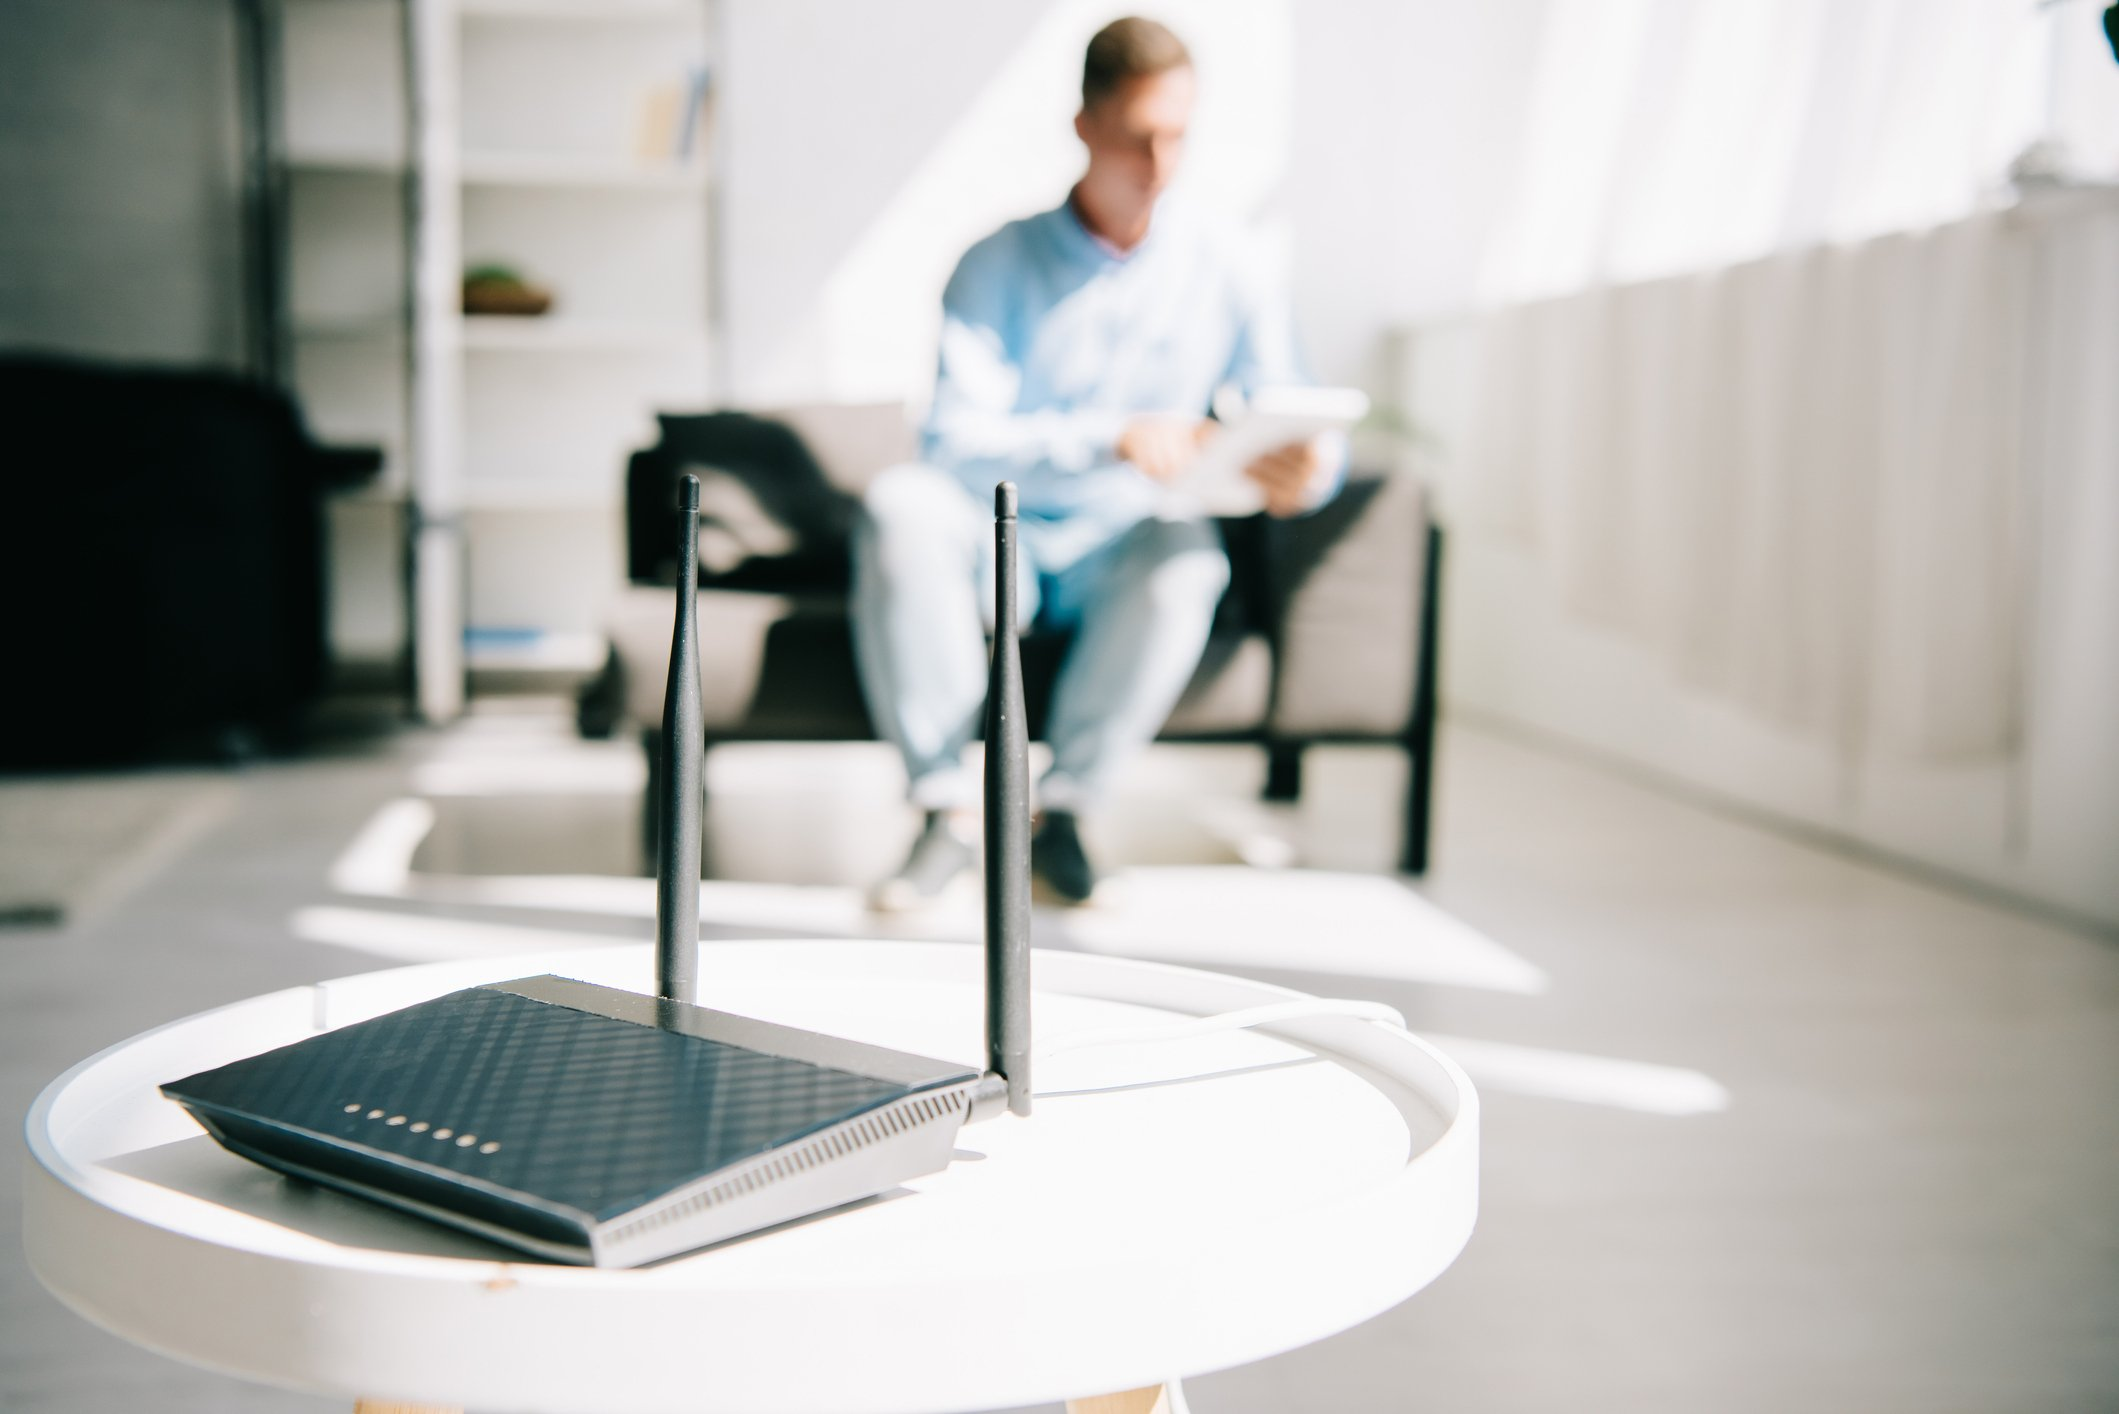 7 features to consider when choosing a WI-FI router